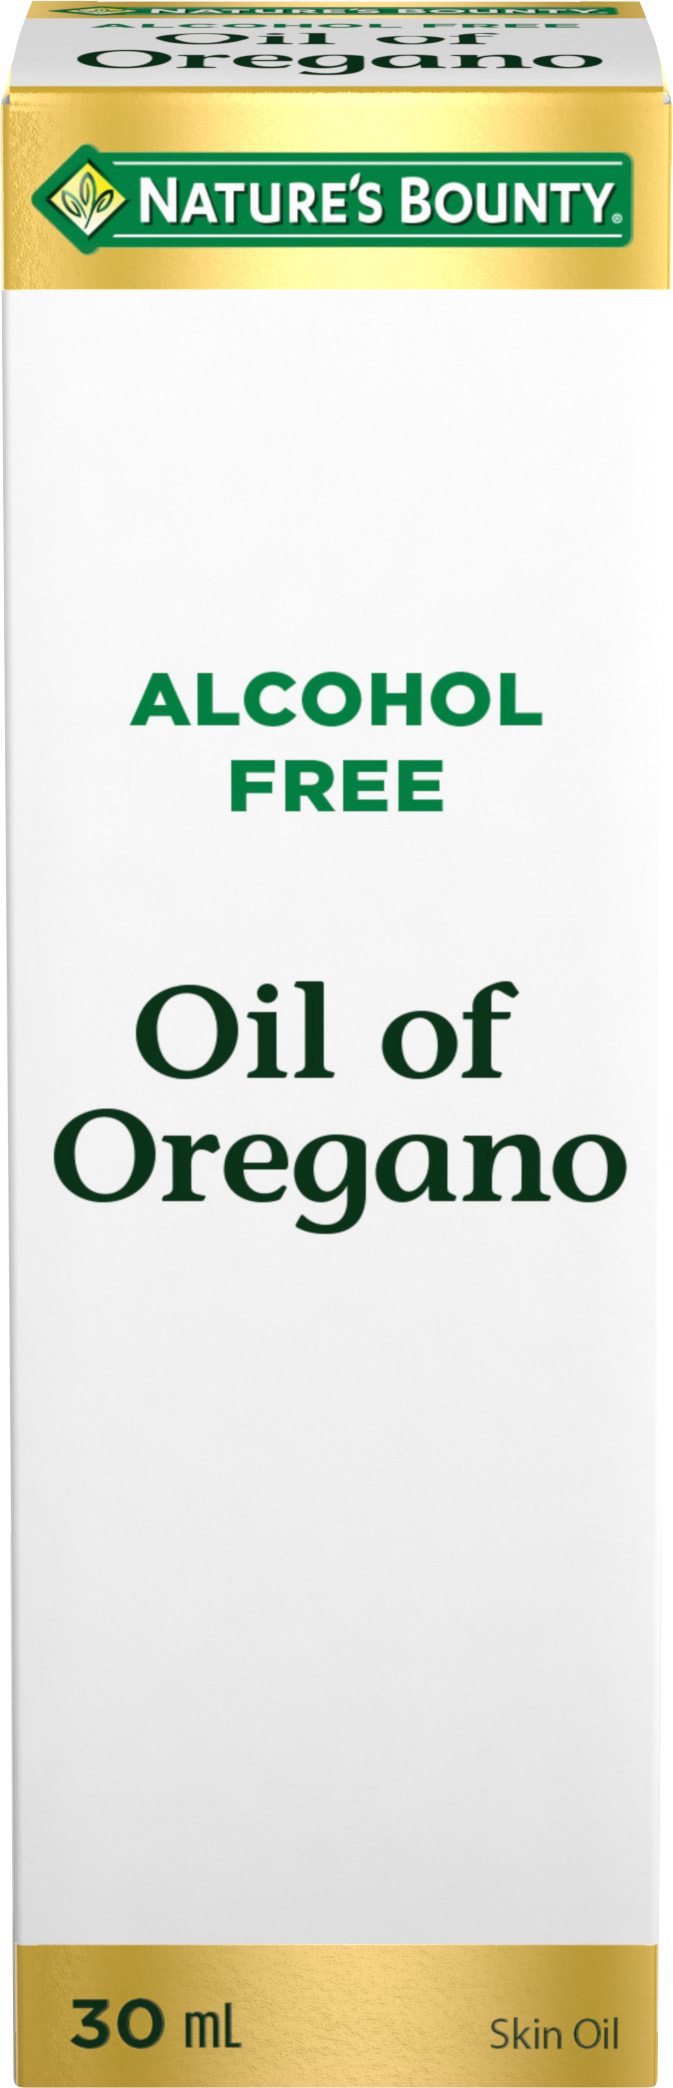 Oil of Oregano Liquid